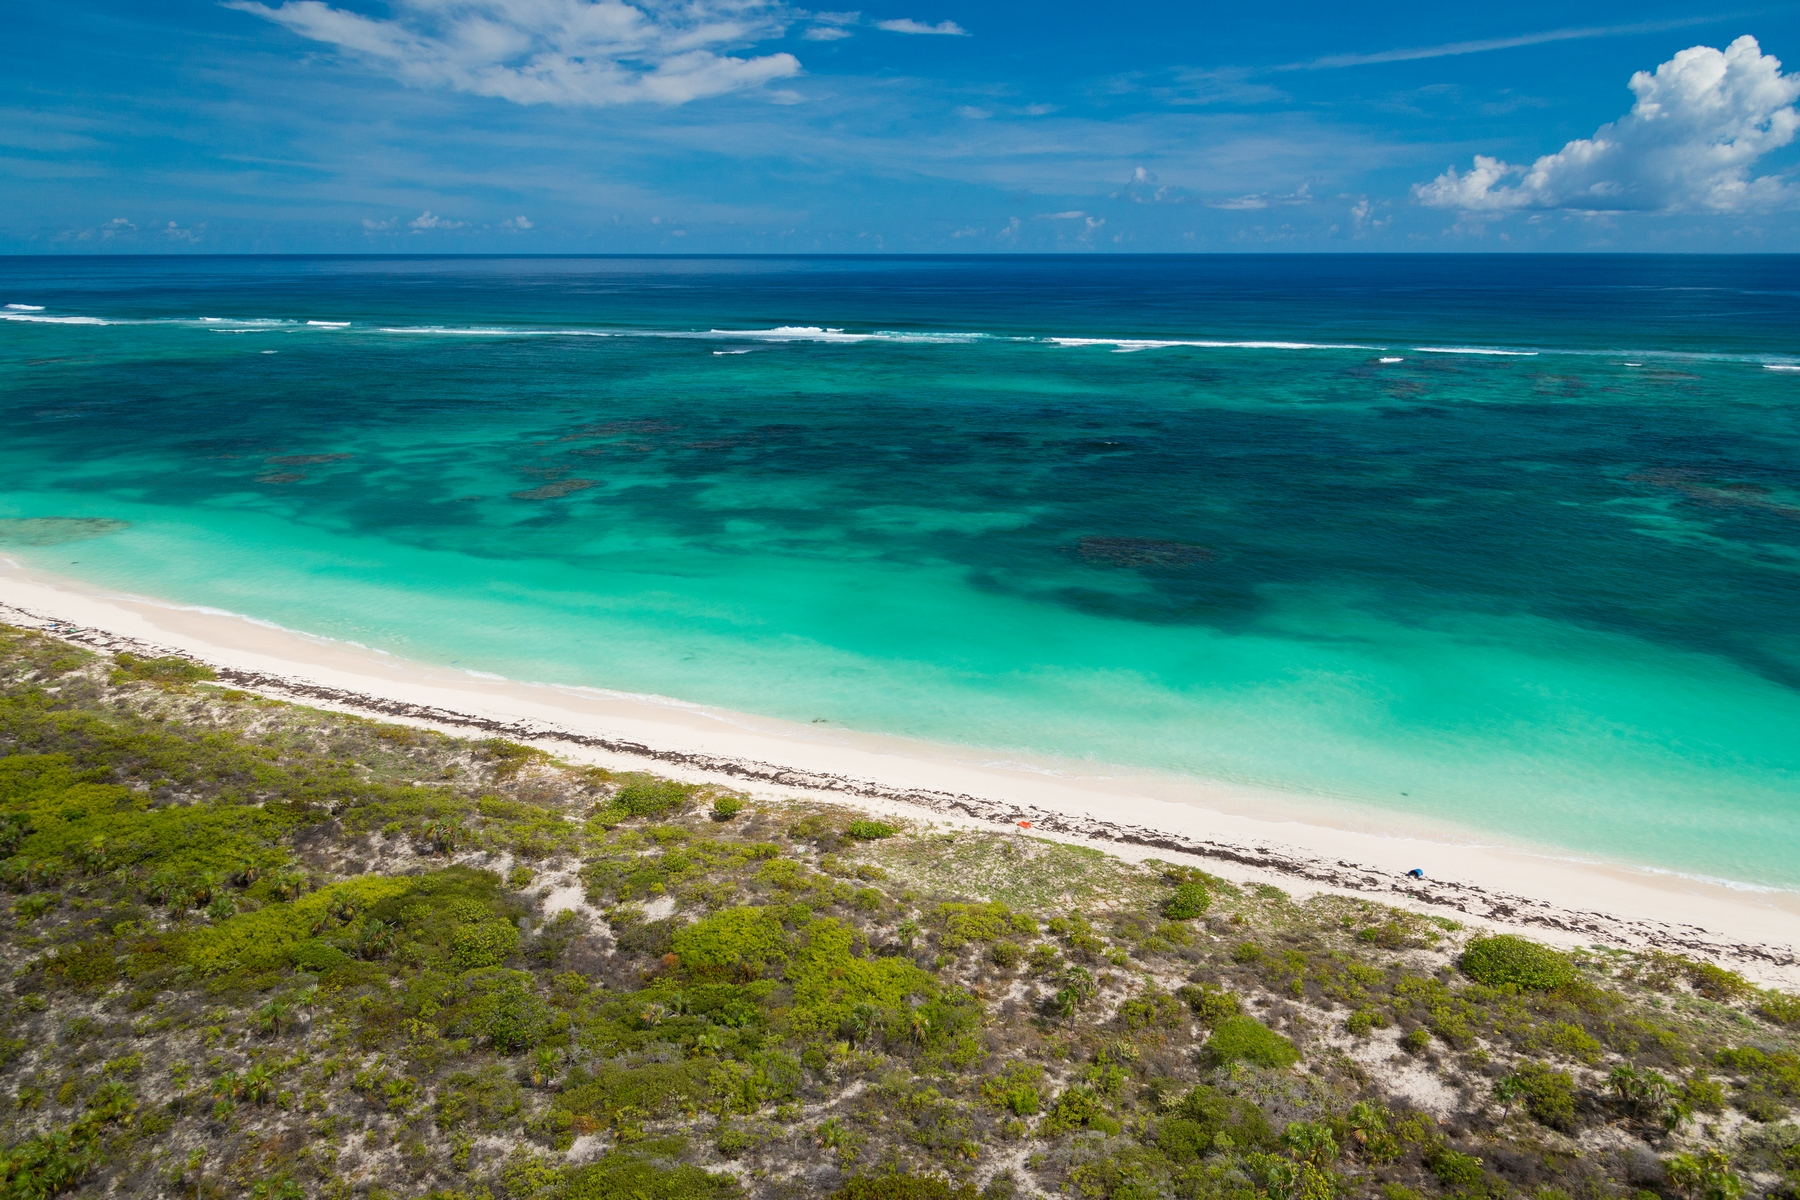 Additional photo for property listing at EAST CAICOS BLOCK 30200 1B BEACHFRONT INVESTMENT OPPORTUNITY East Caicos, East Caicos TCI BWI Îles Turques Et Caïques